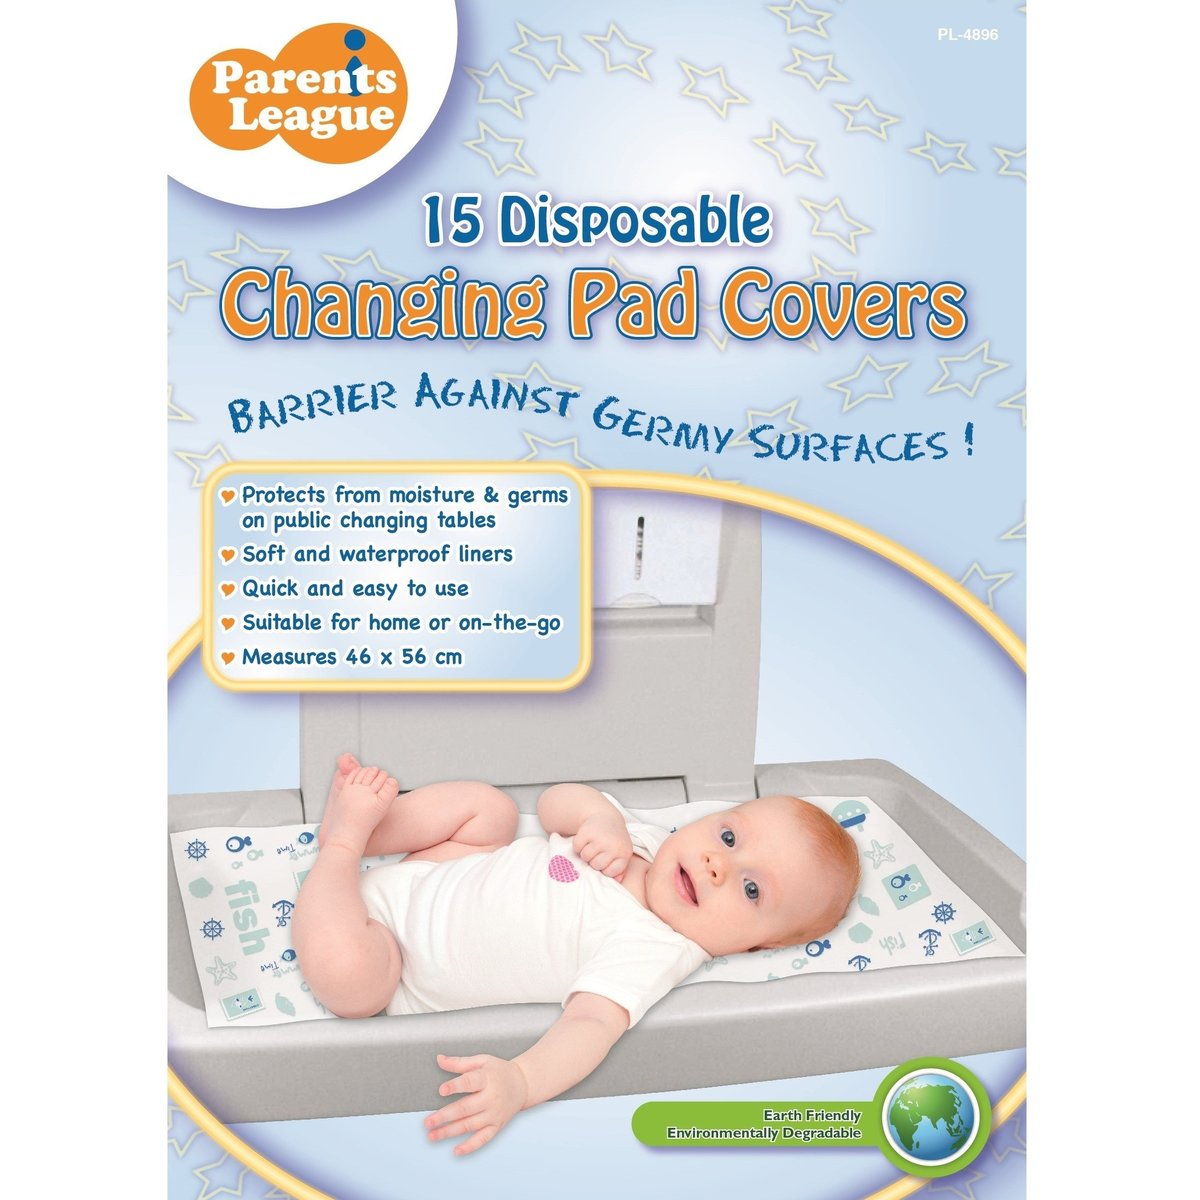 Disposable Changing Pad Cover 15's